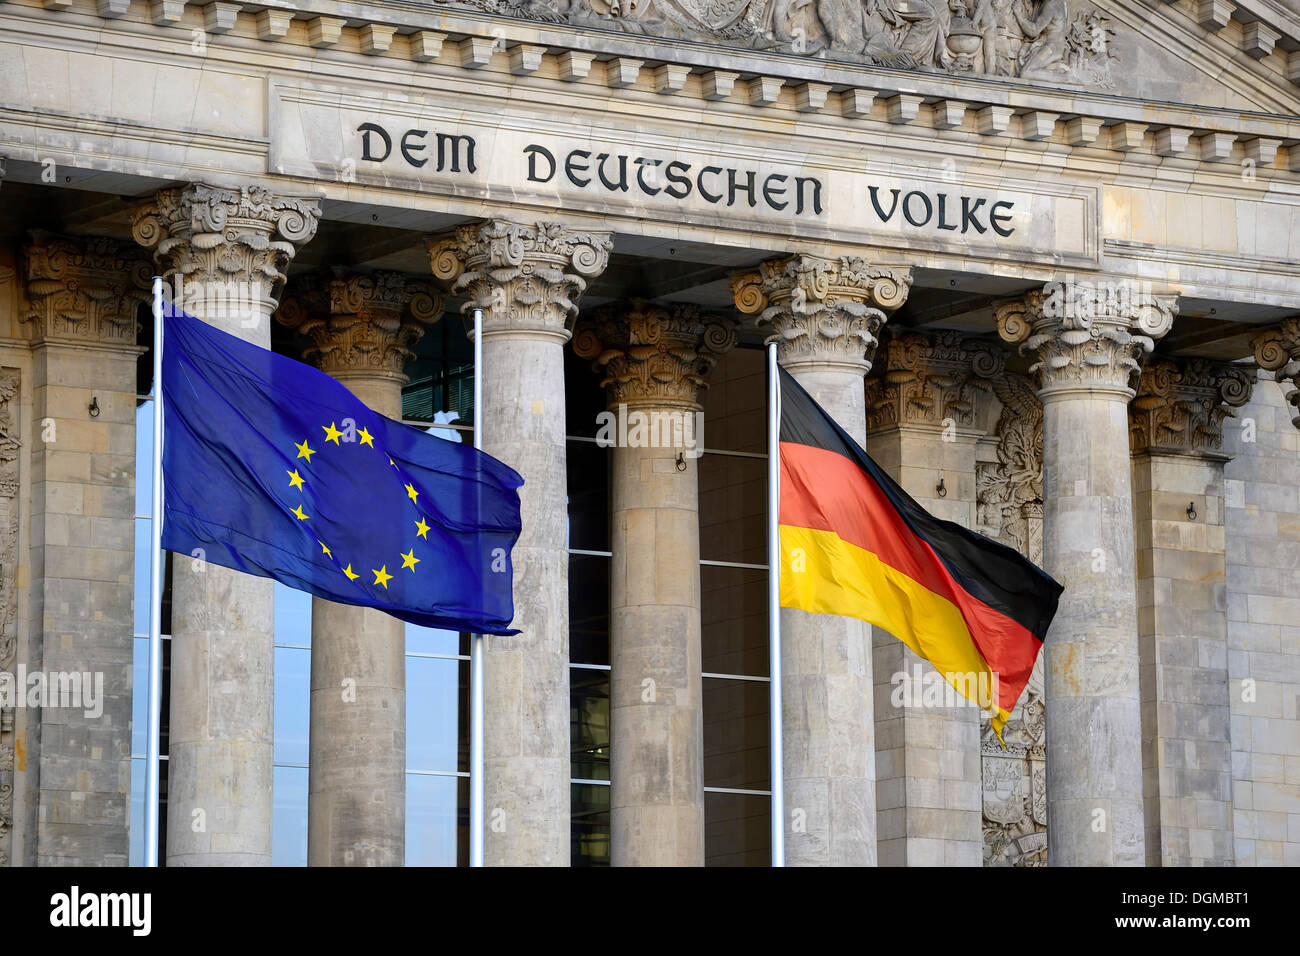 Flags of the European Union and Germany in front of the main gable of the Reichstag Building, Bundestag, Berlin, Germany - Stock Image